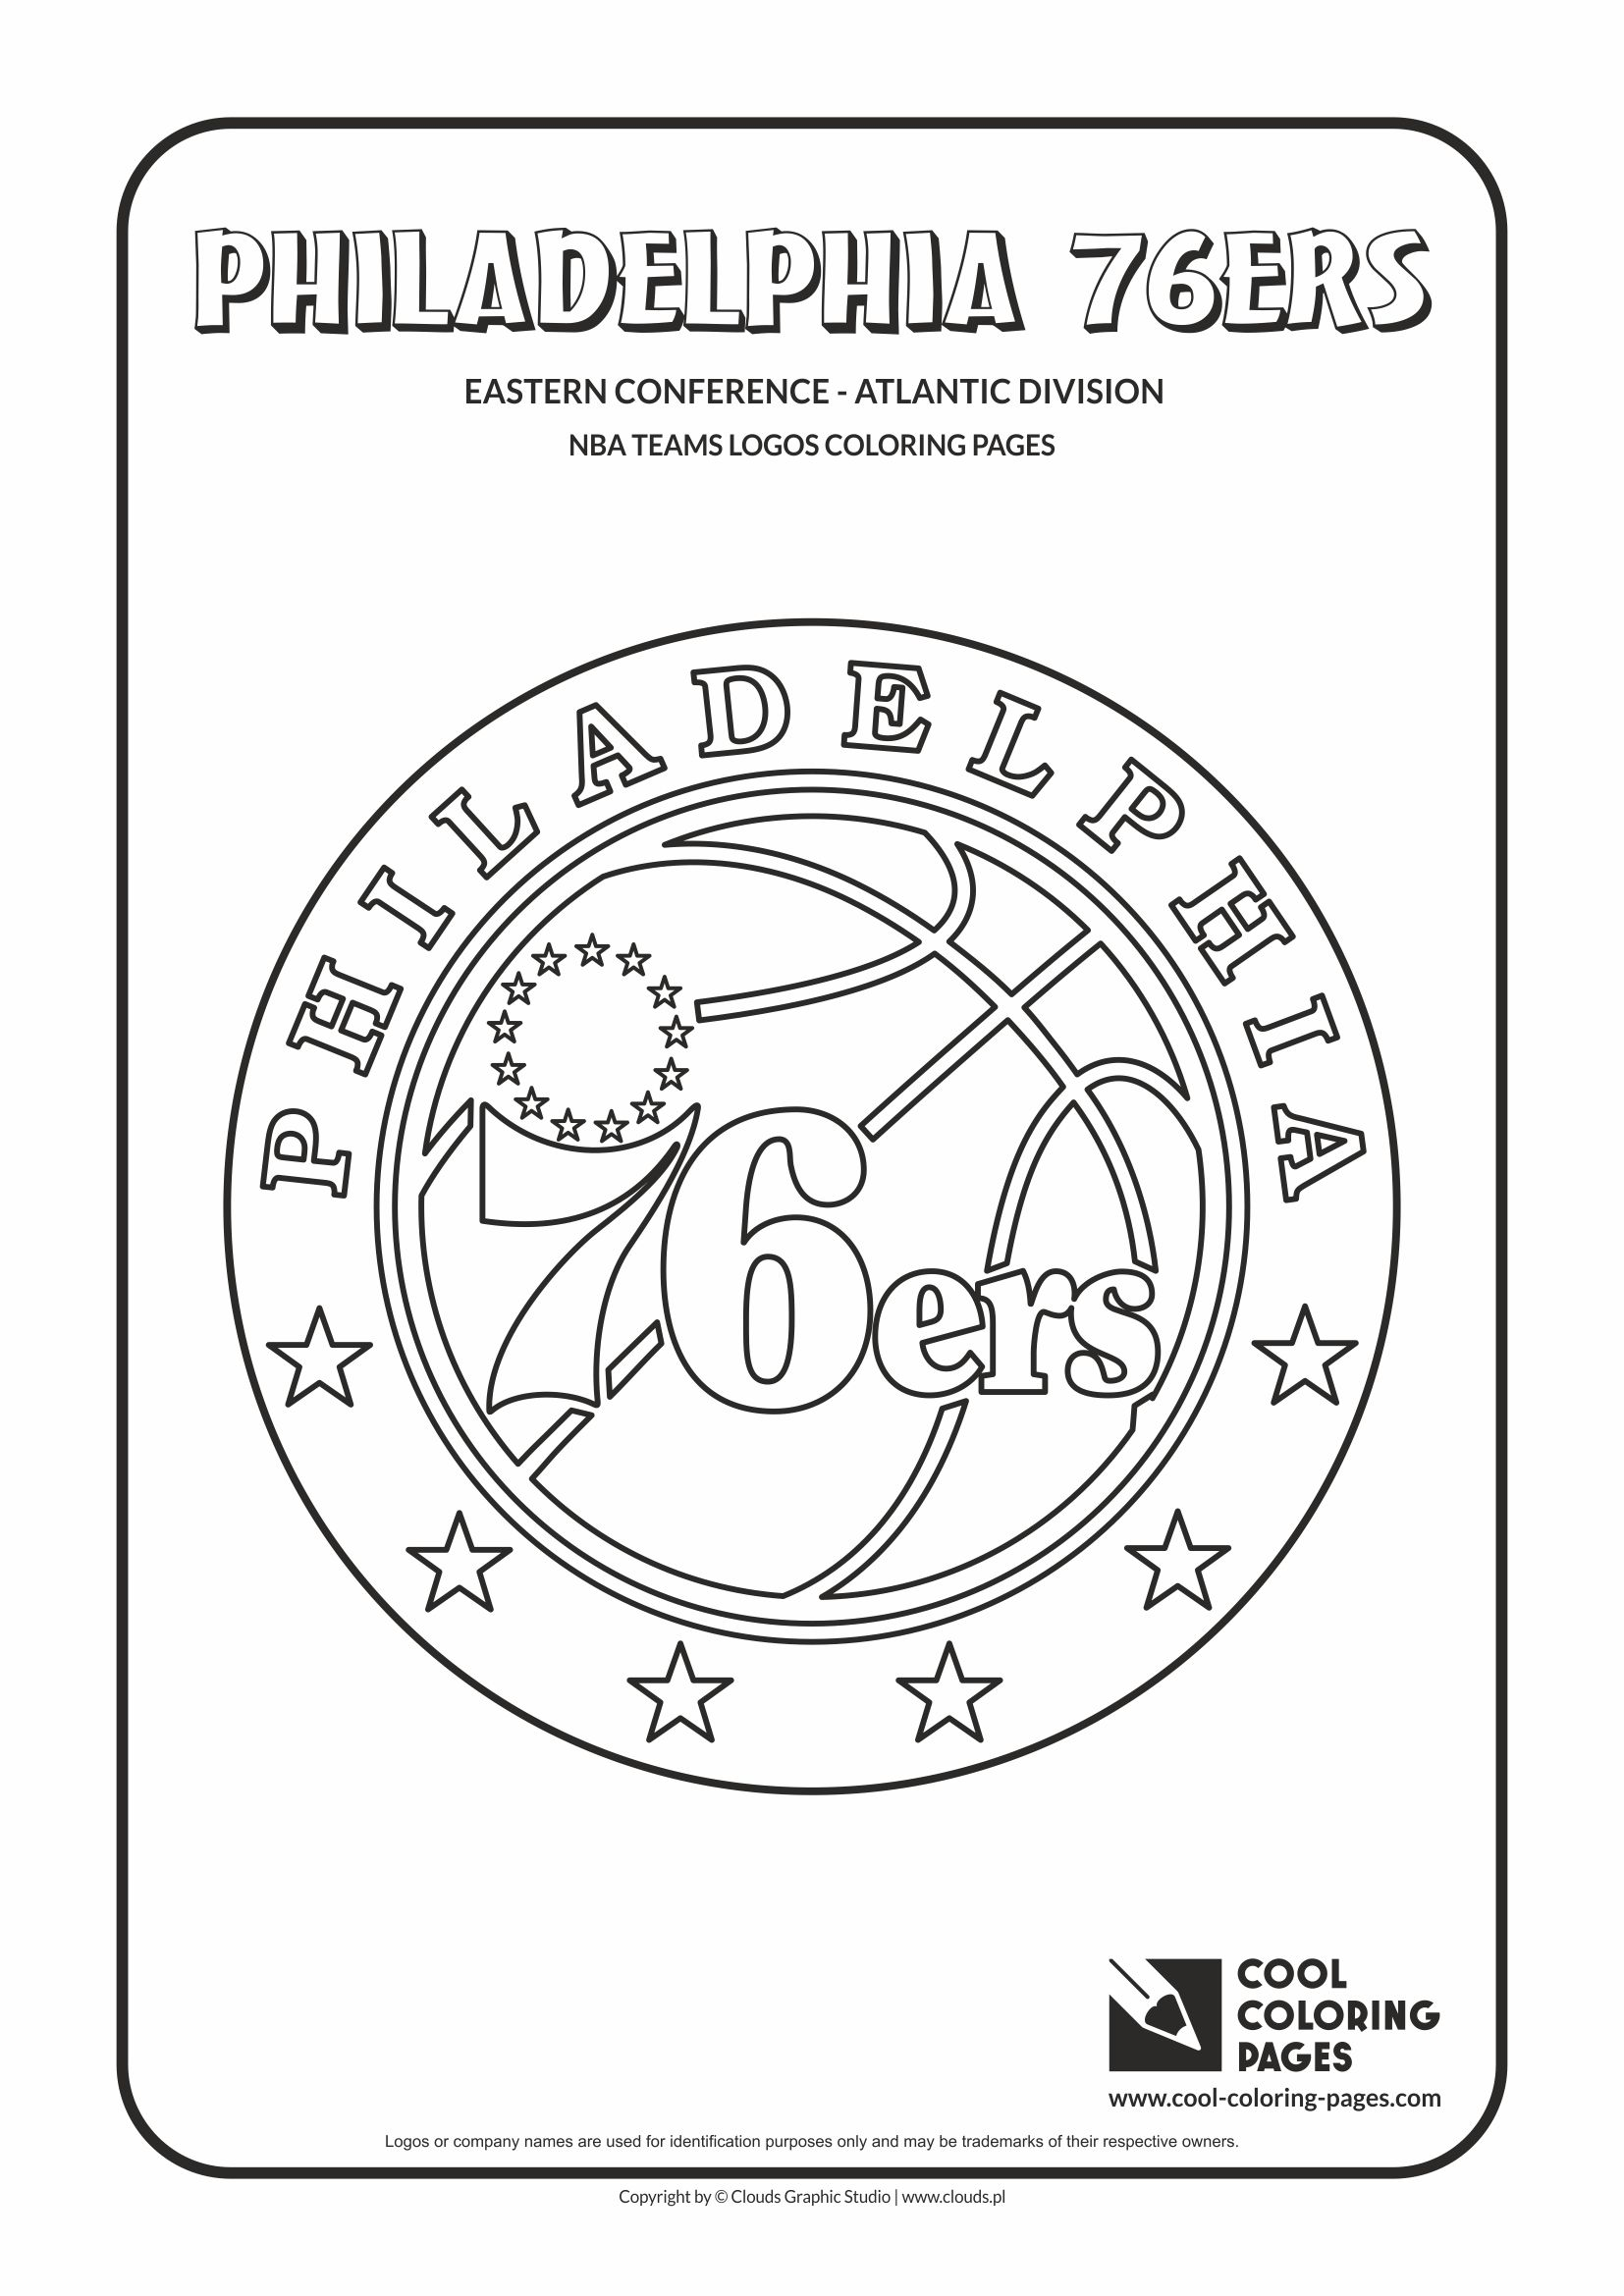 cool coloring pages nba teams logos philadelphia 76ers logo coloring page with philadelphia